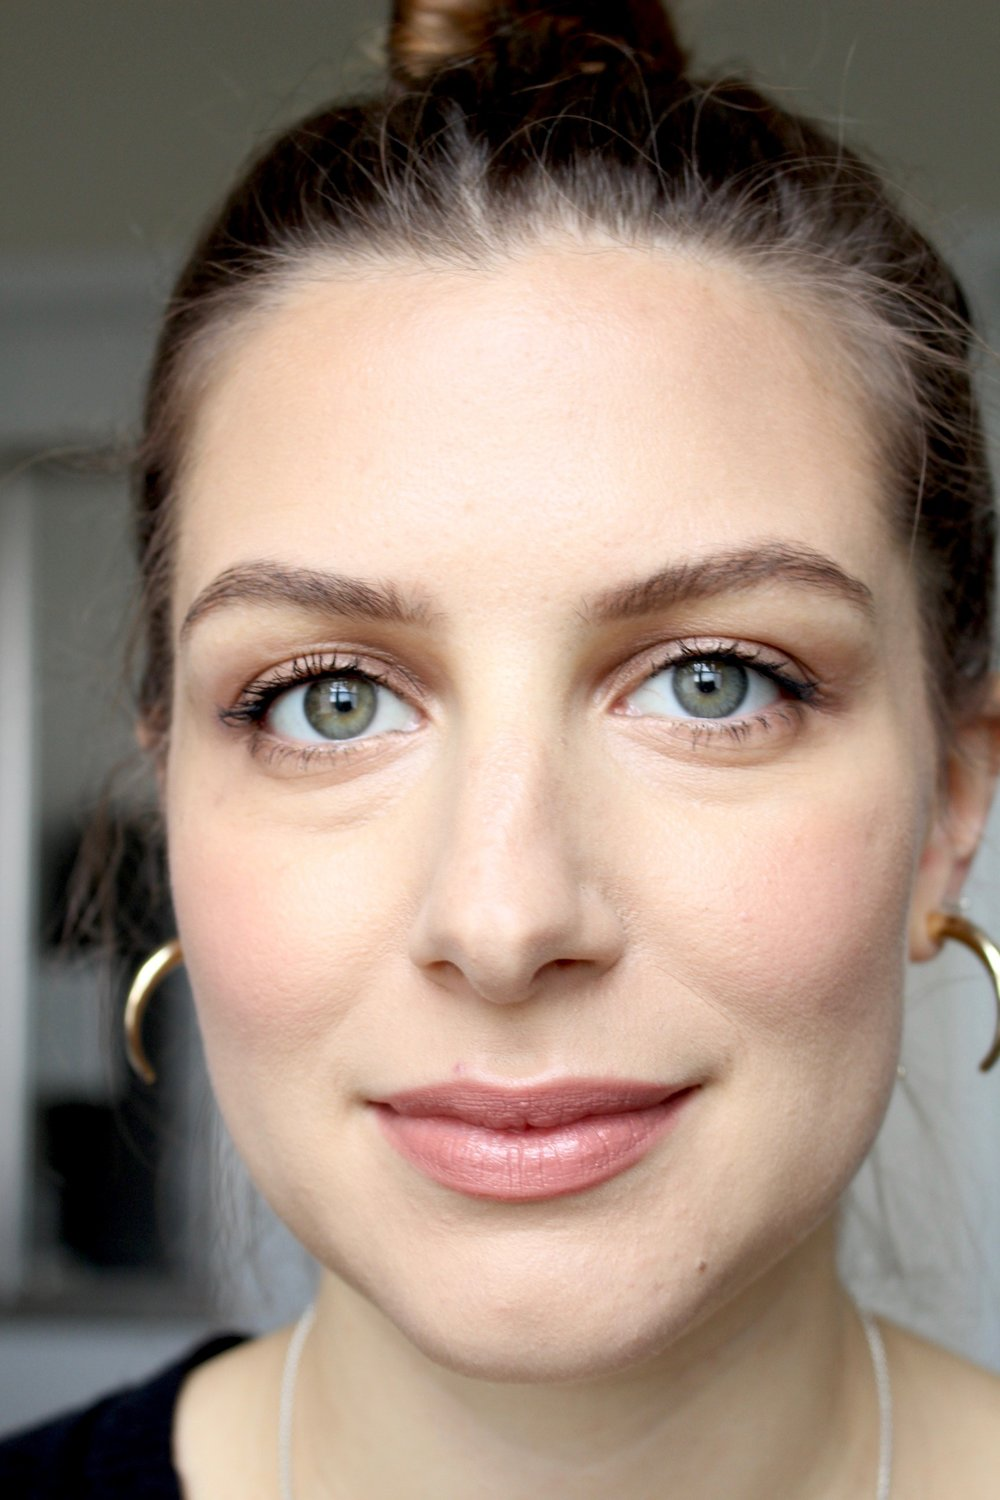 TIGHTLINED EYES / MAKEUP / 4 WAYS TO WEAR EYELINER / BEAUTY / NICOLEMCARUSO.COM